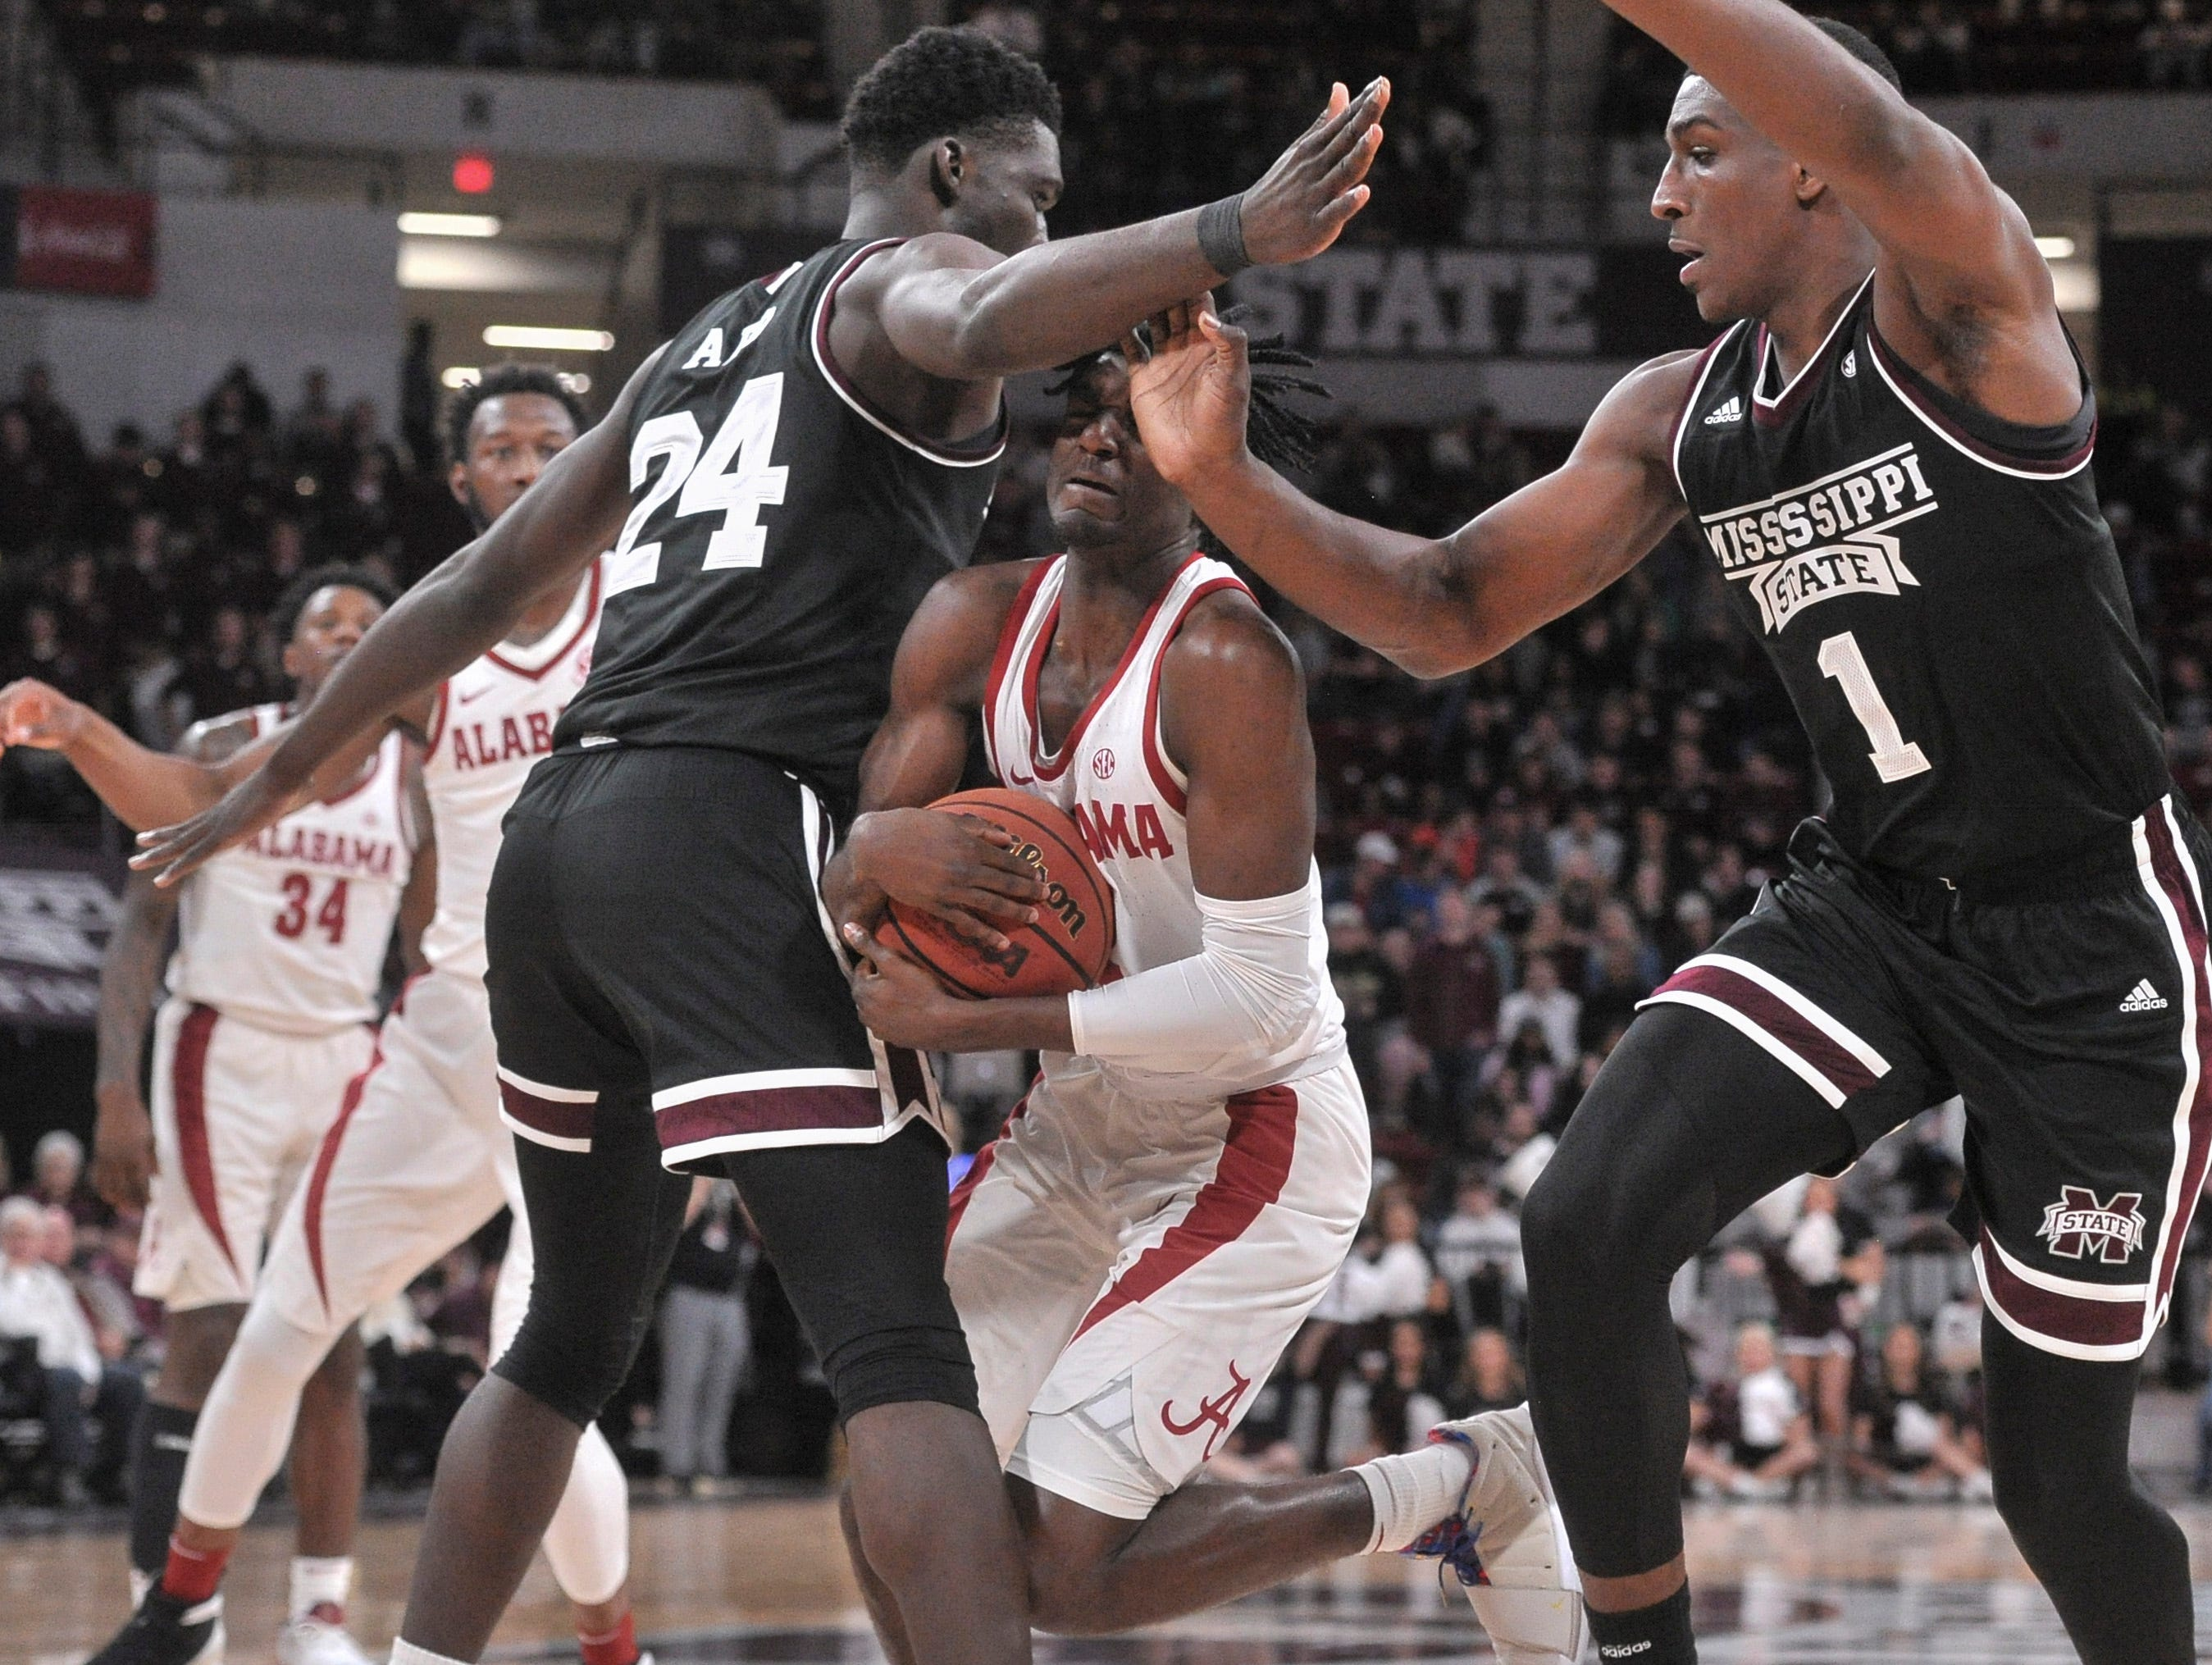 Feb 12, 2019; Starkville, MS, USA; Alabama Crimson Tide guard Kira Lewis Jr. (2) controls the ball between Mississippi State Bulldogs forward Abdul Ado (24) and State Bulldogs forward Reggie Perry (1) during the second half at Humphrey Coliseum. Mandatory Credit: Justin Ford-USA TODAY Sports